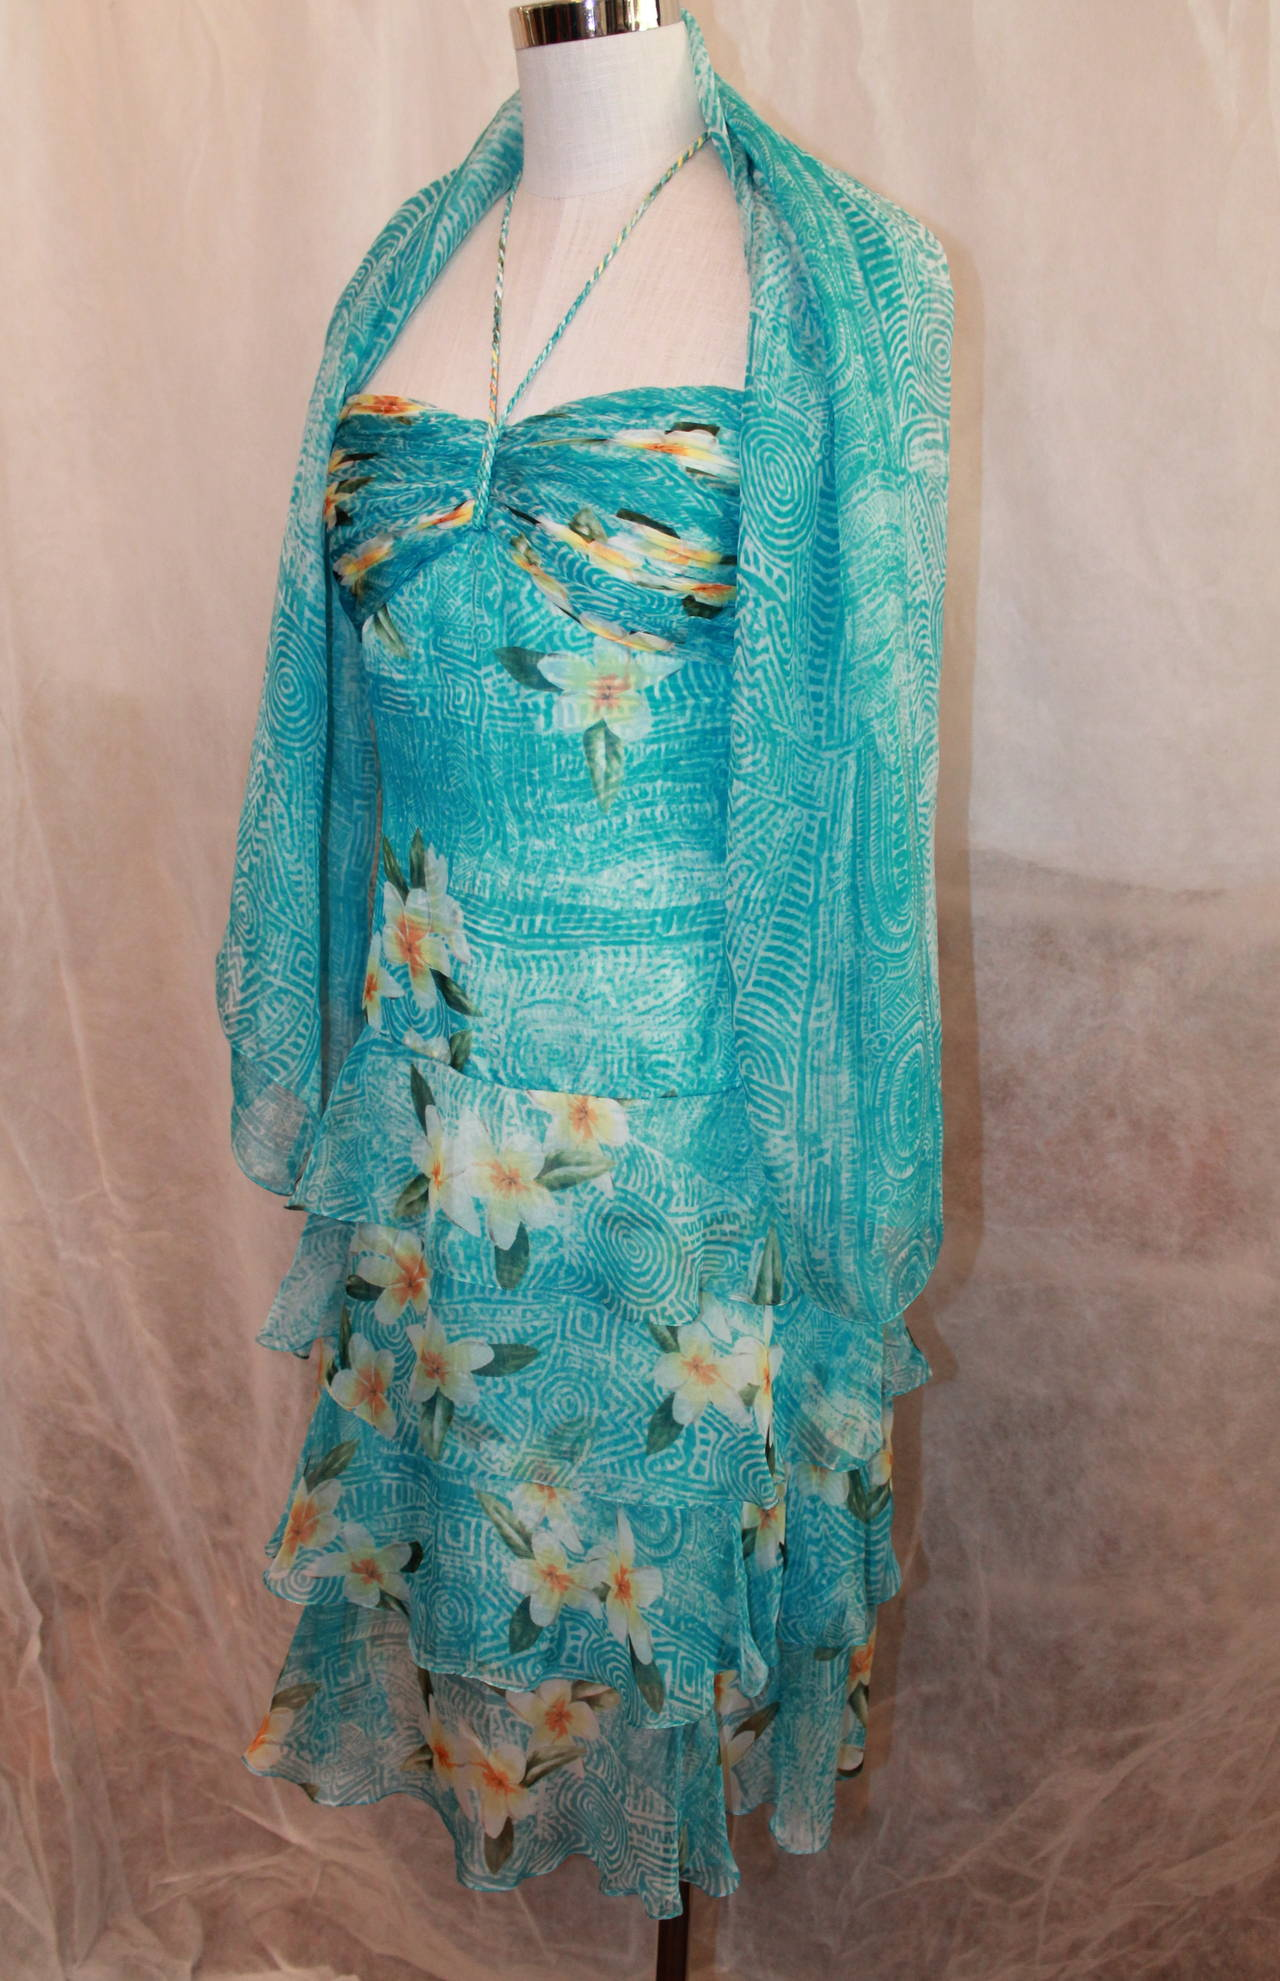 Oscar de la Renta Blue Hawaiian Print Halter Dress & Shawl - 10. This dress is in very good condition and comes with a shawl. It is a silk chiffon fabric and has ruffles on the bottom of the skirt.  Measurements: Bust- 31